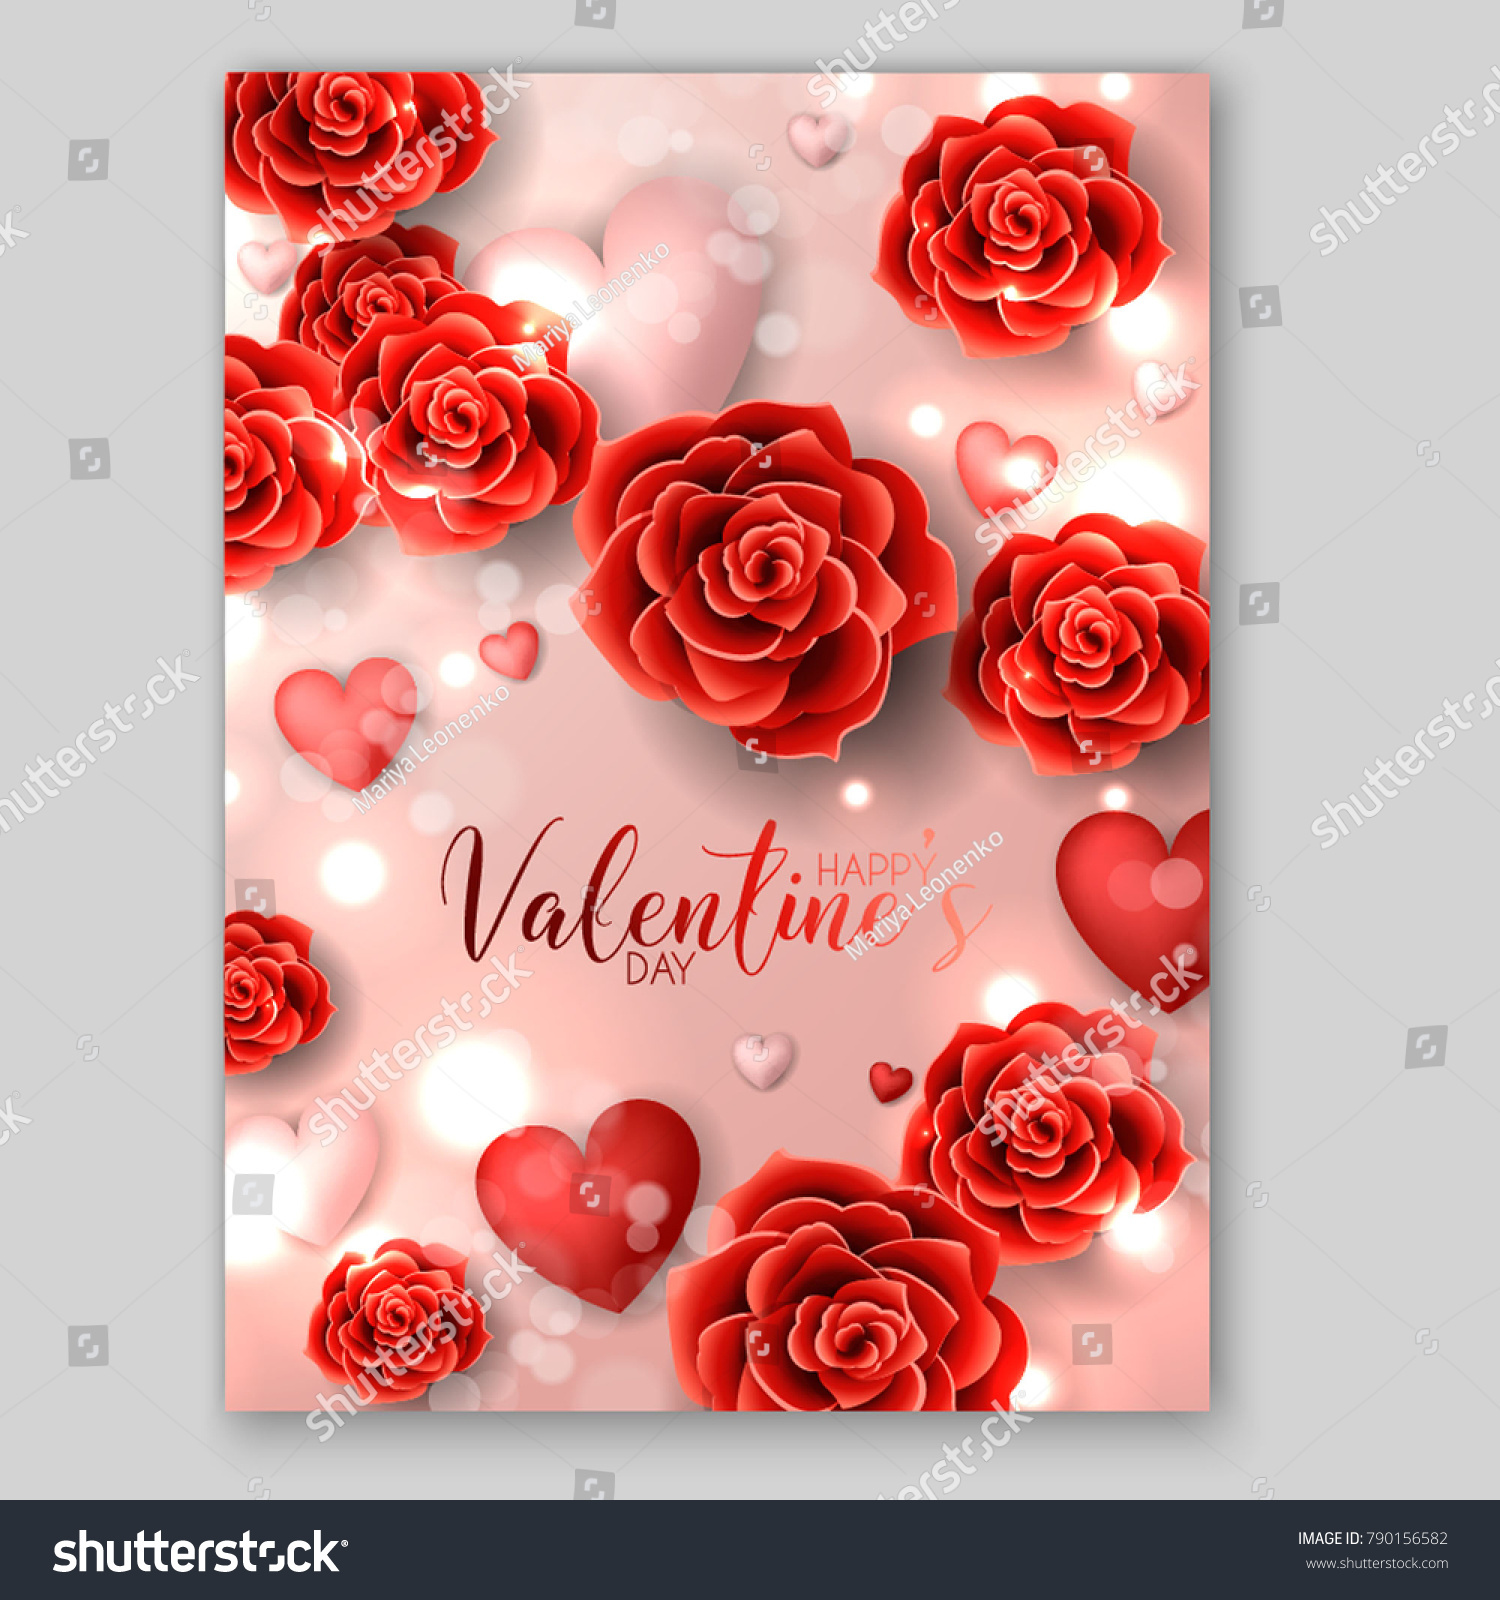 Happy Valentines Day Invitation Red Roses Stock Vector (Royalty Free ...